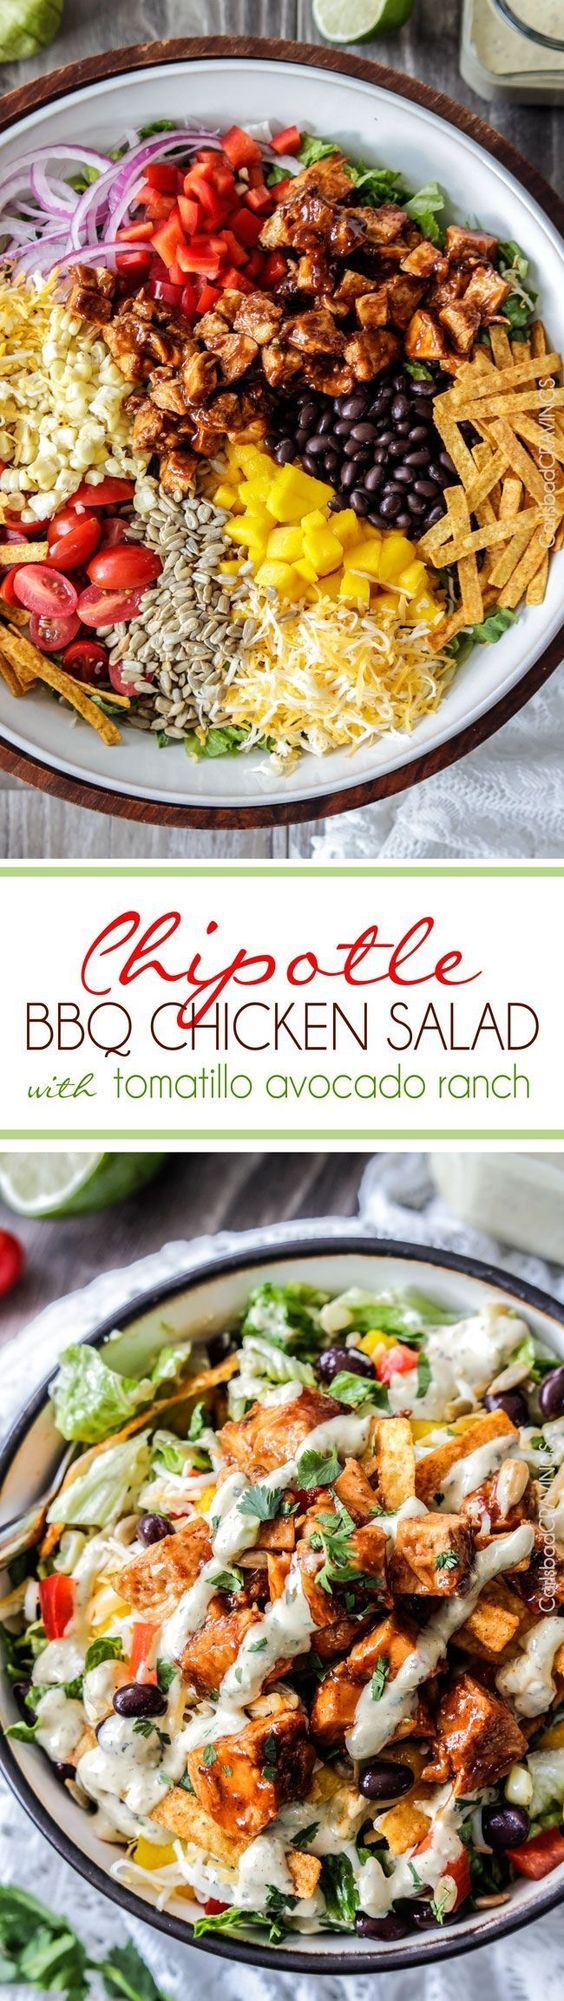 Chipotle BBQ Chicken Salad with 5 Minute Blender Tomatillo Avocado Ranch Dressing is WAY Better than your favorite restaurant salad at a fraction of the cost packed with crunchy veggies, crispy tortilla strips, tender barbecue chicken and the most intoxicating dressing! #salad #barbecue #BBQ #ranch #avocado